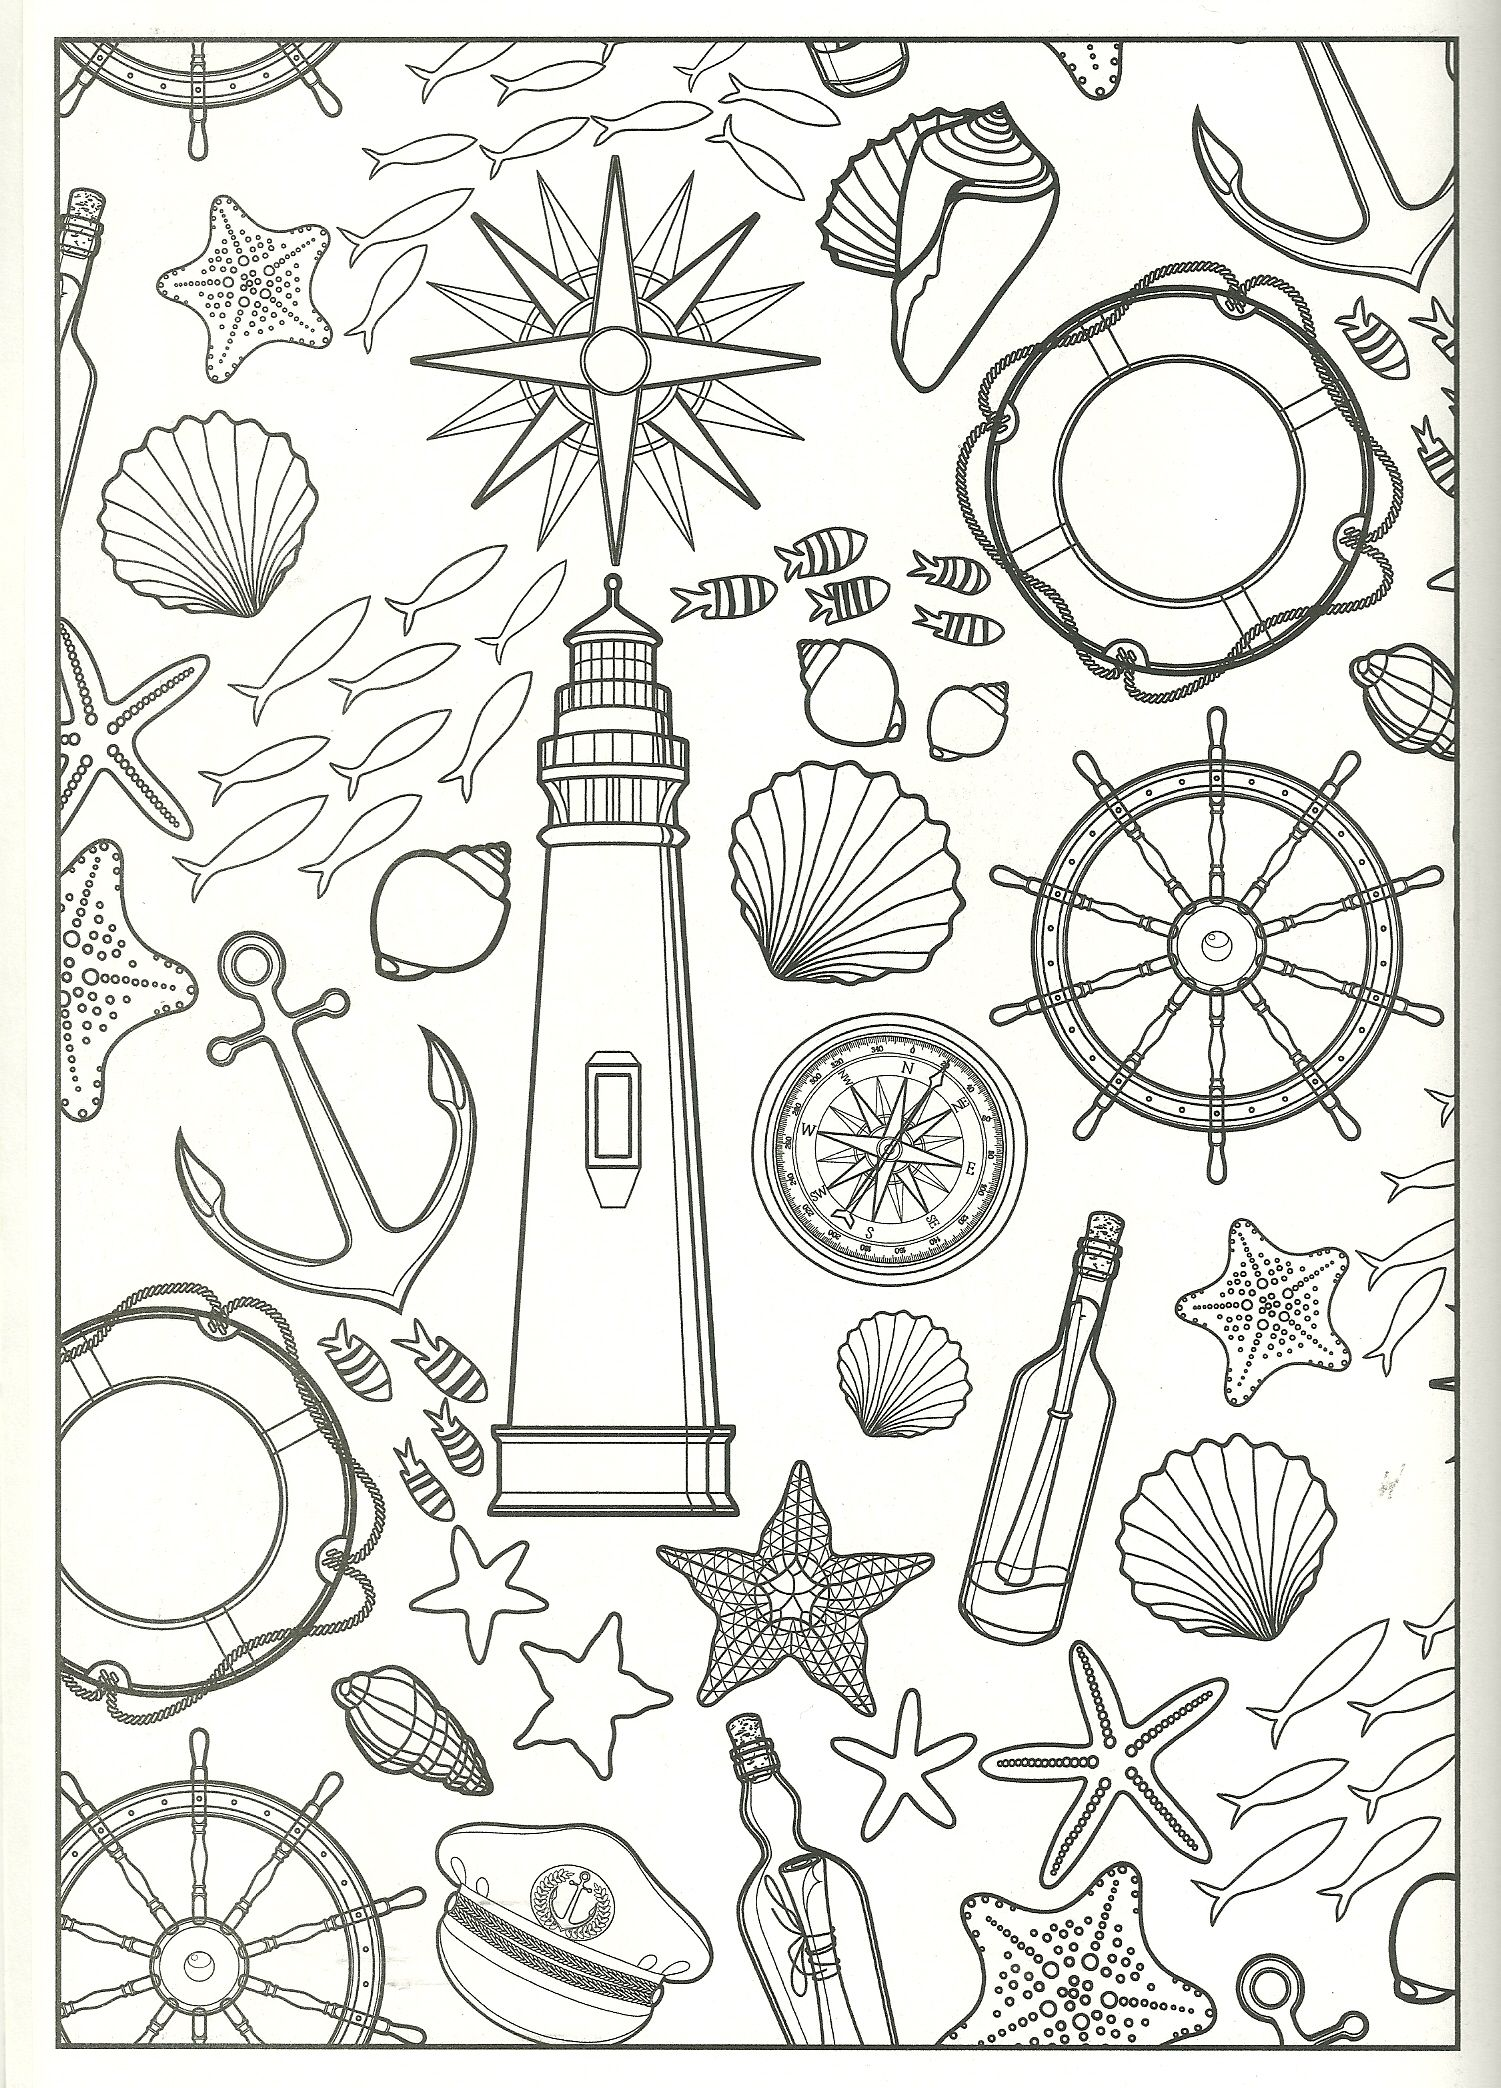 nautical collage coloring page  Kindergarten coloring pages